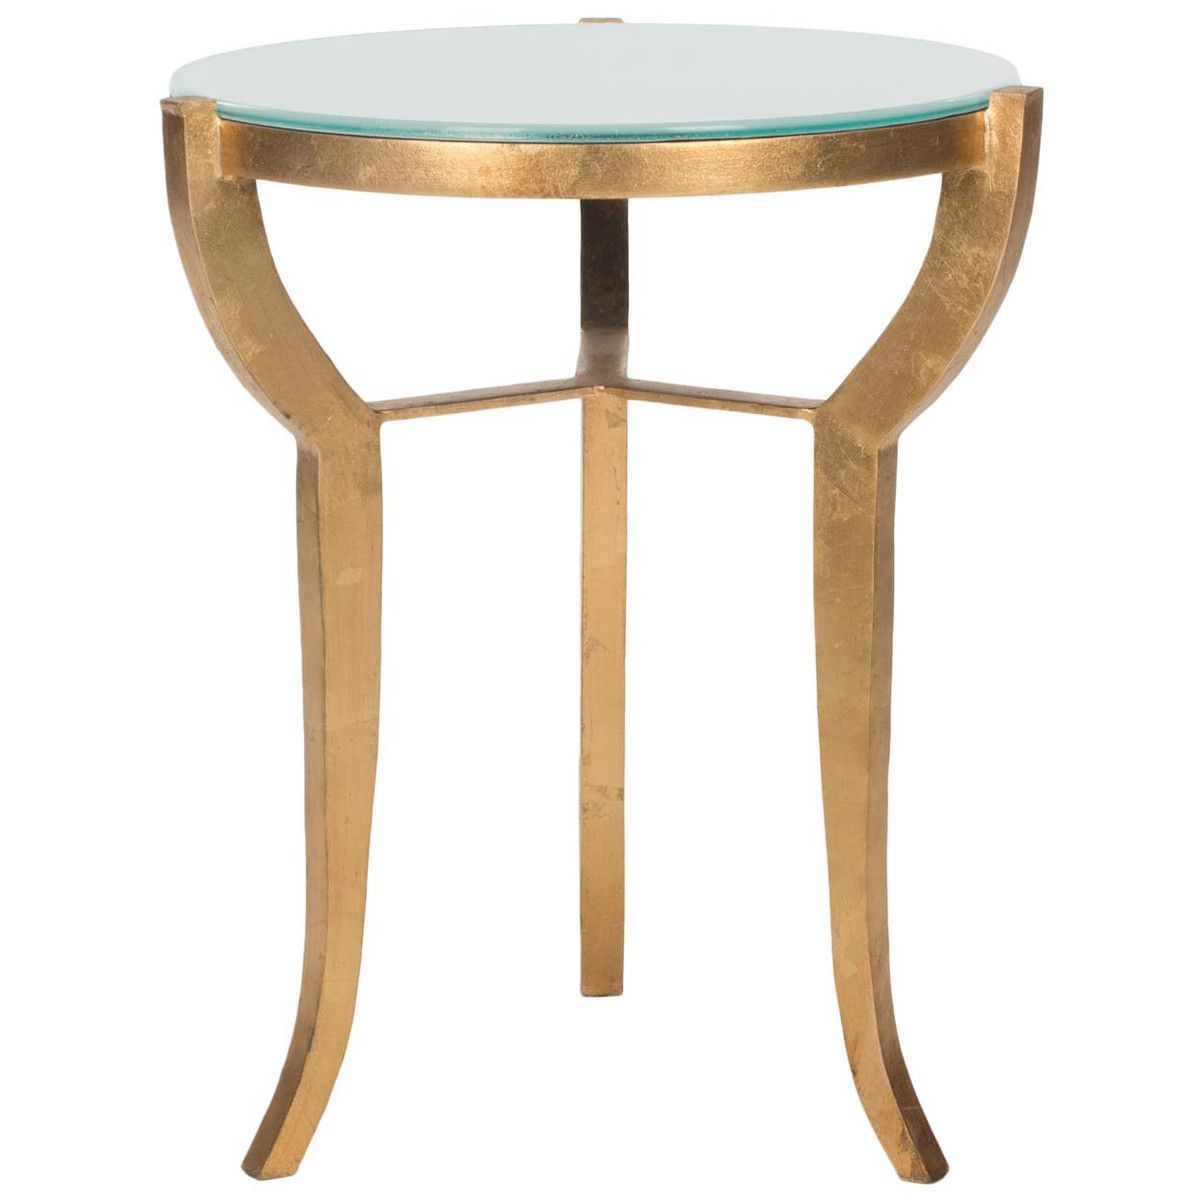 Fab ormond accent table white tables u storages